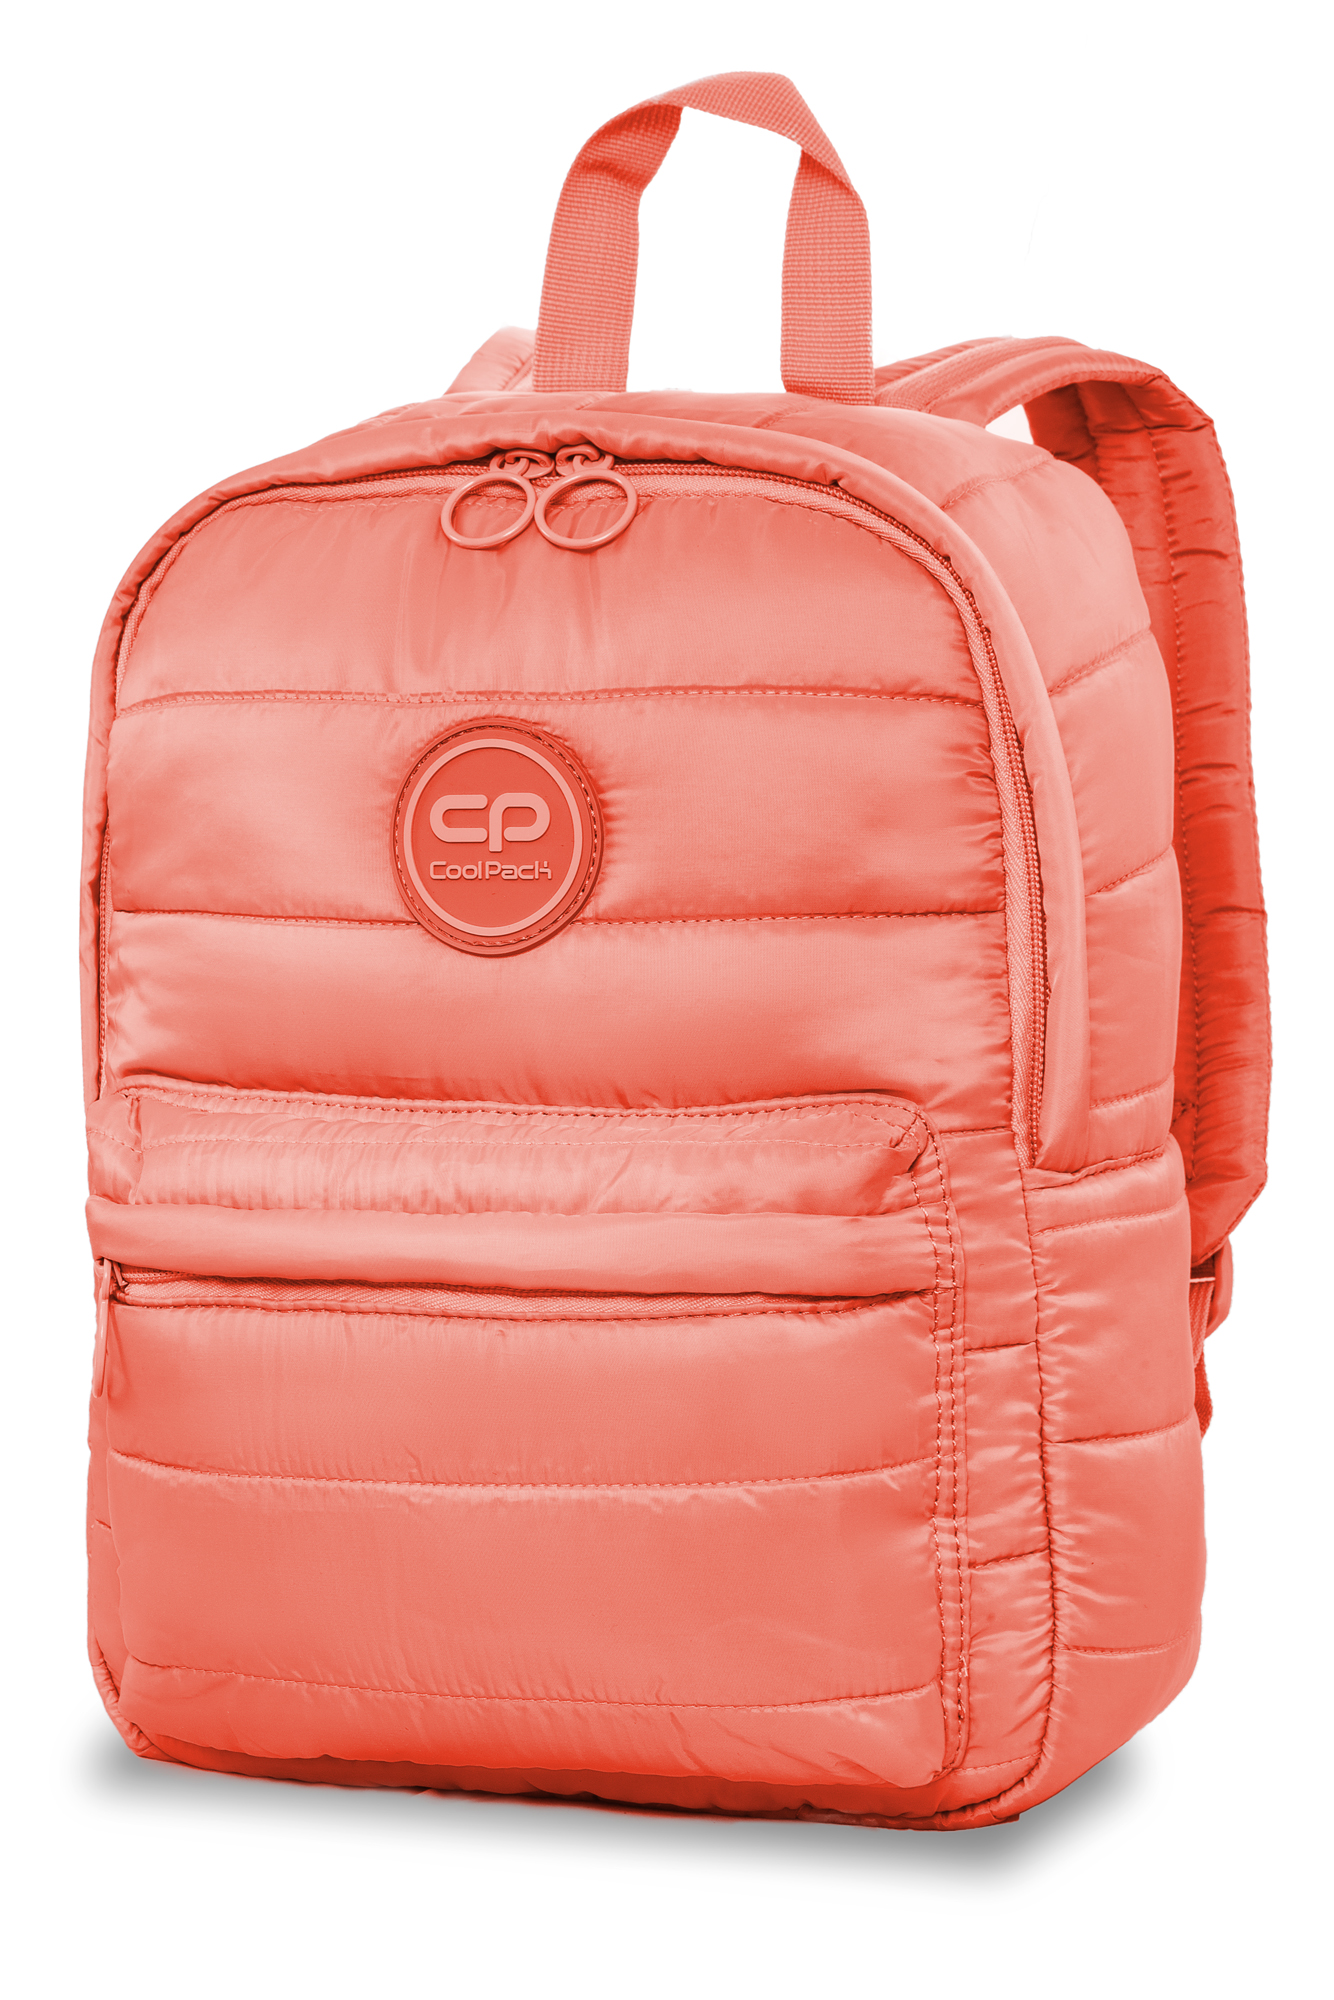 Coolpack - abby - youth backpack - peach mallow